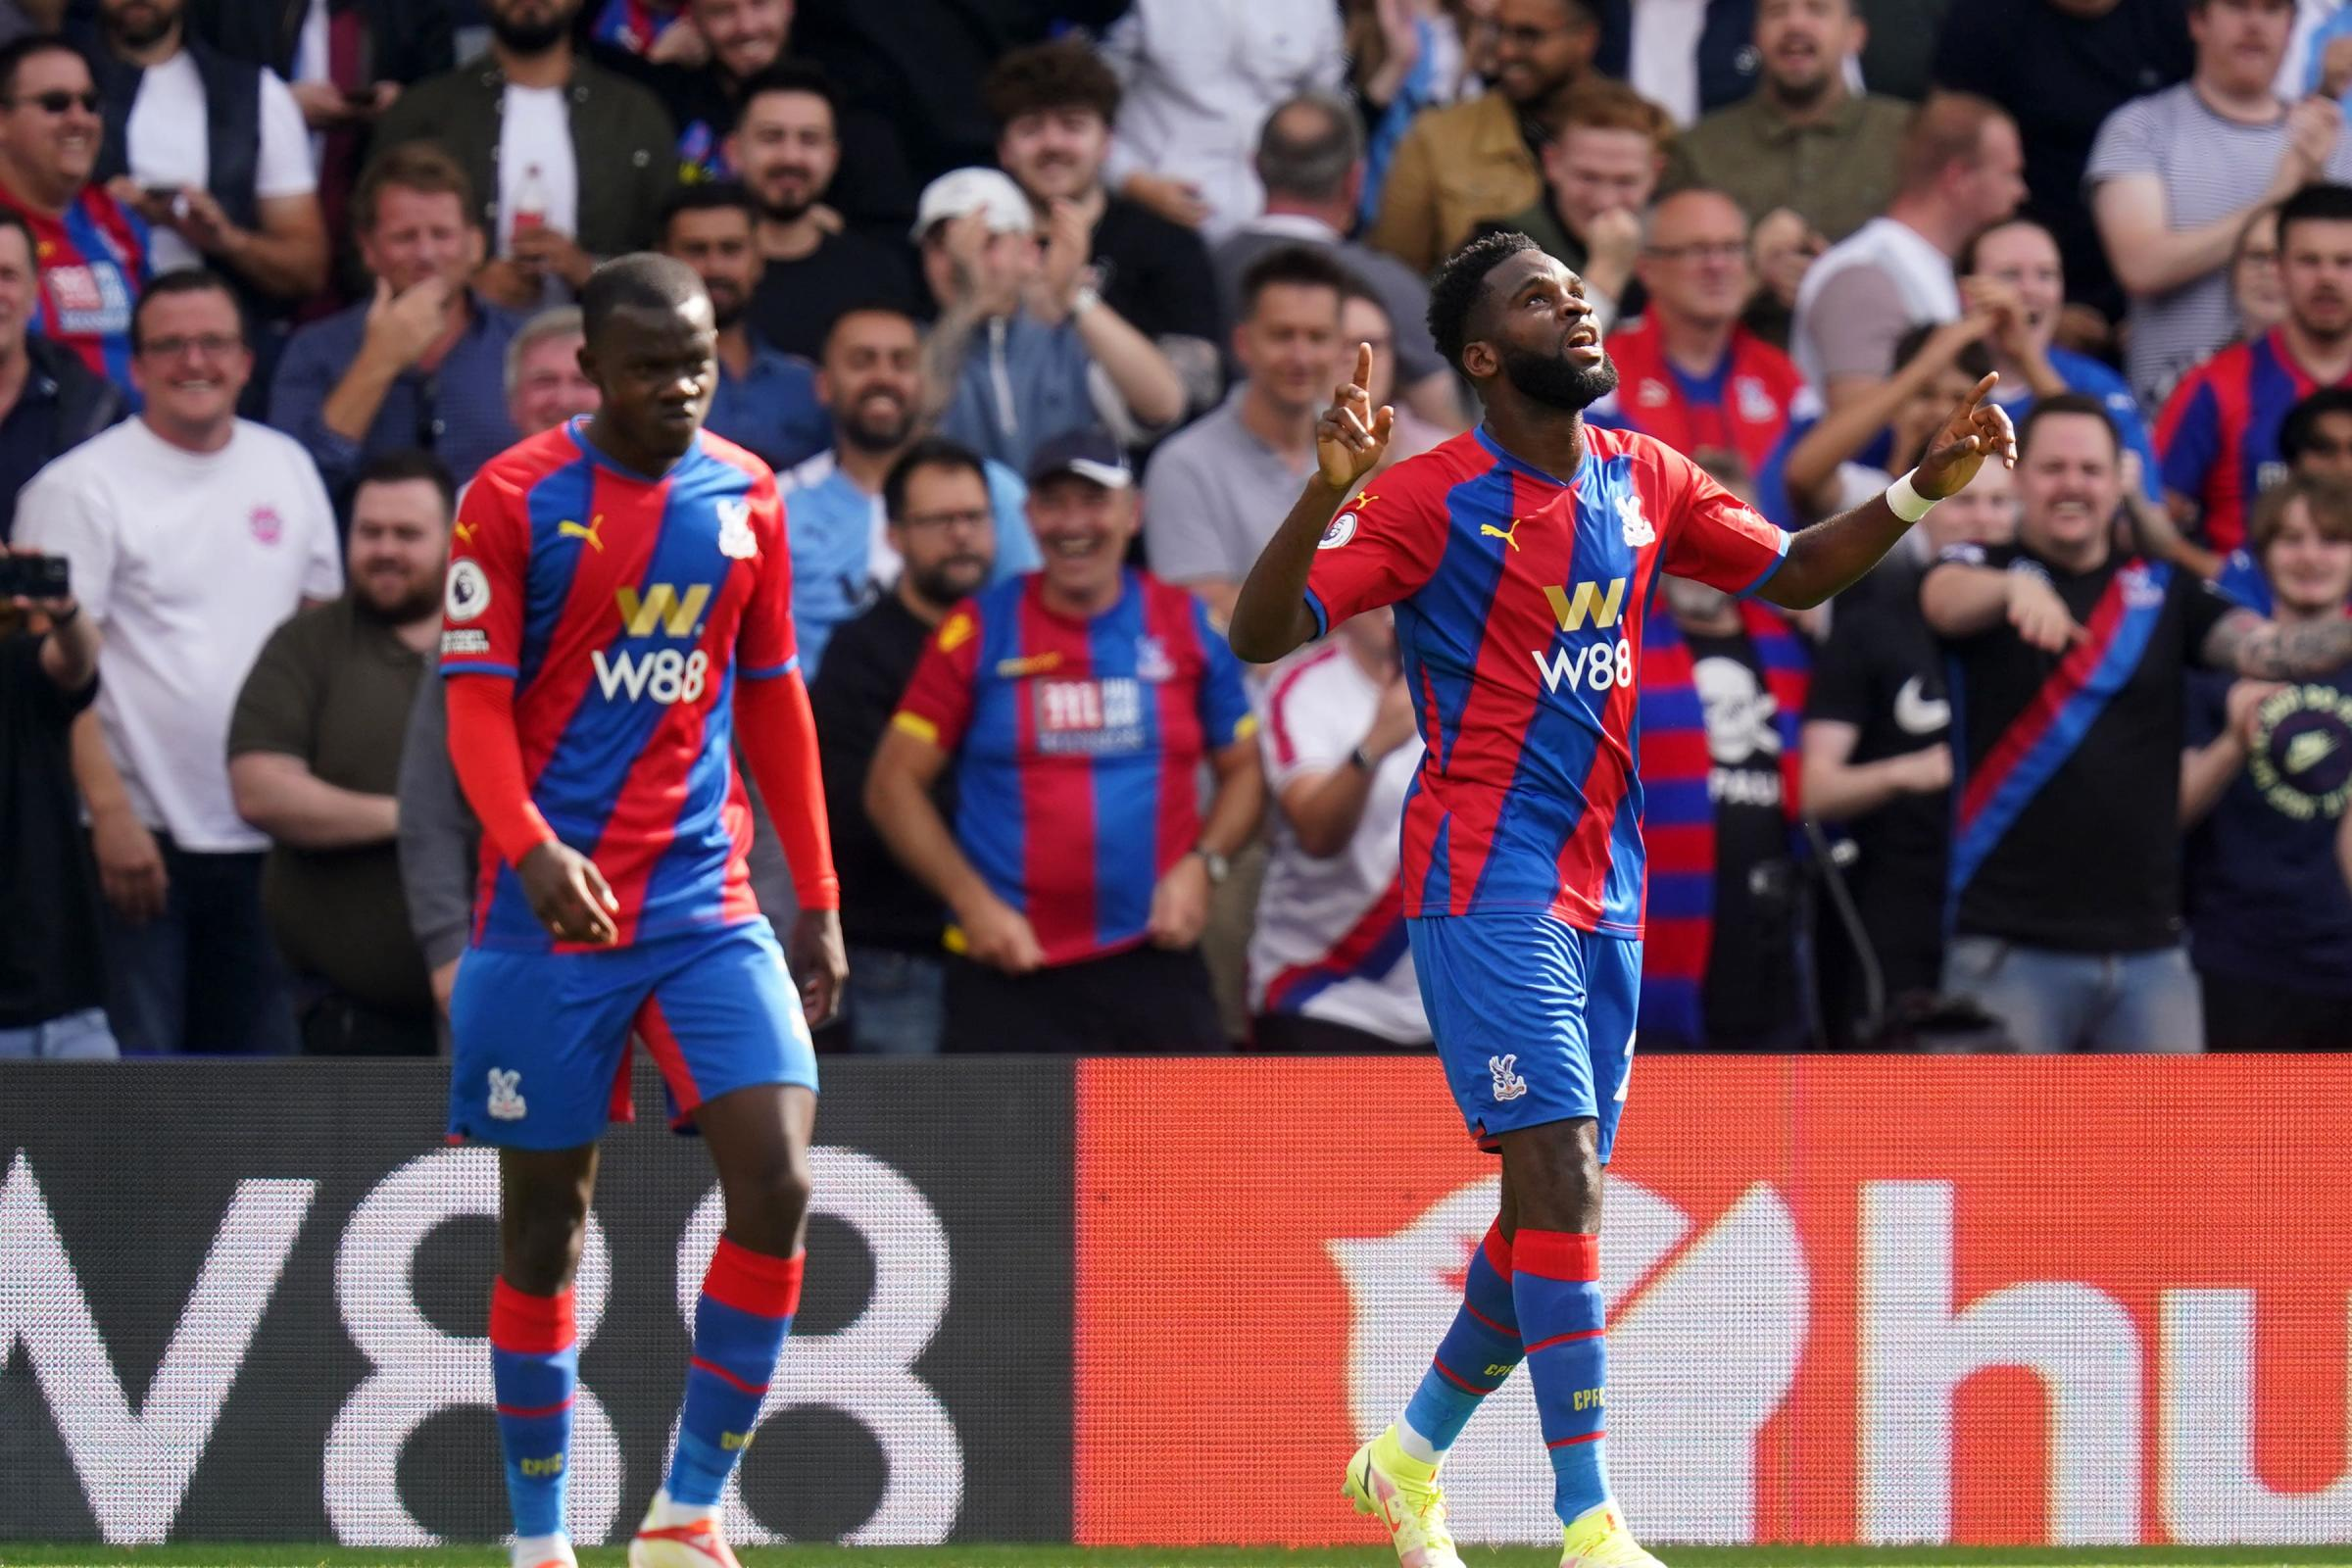 Tottenham loses perfect record in EPL in 3-0 loss at Palace